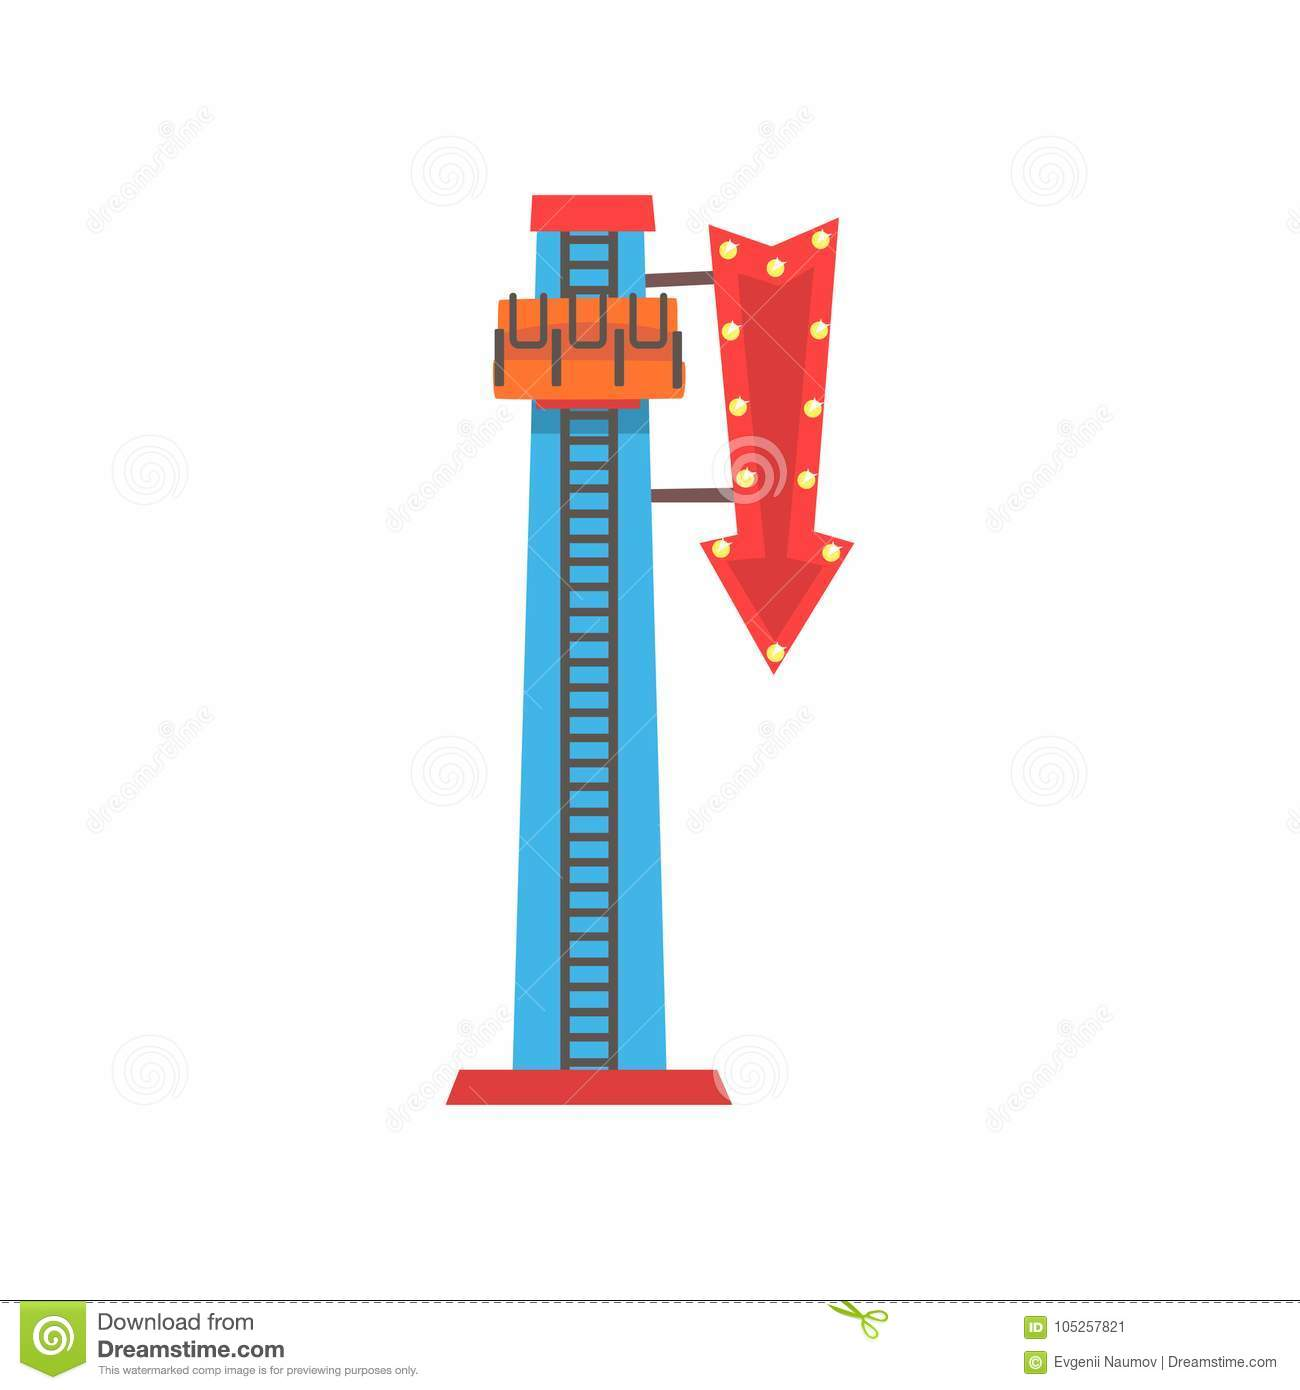 Cartoon illustration of free fall or drop tower. Extreme attraction. Amusement park icon. Funfair or carnival. Flat